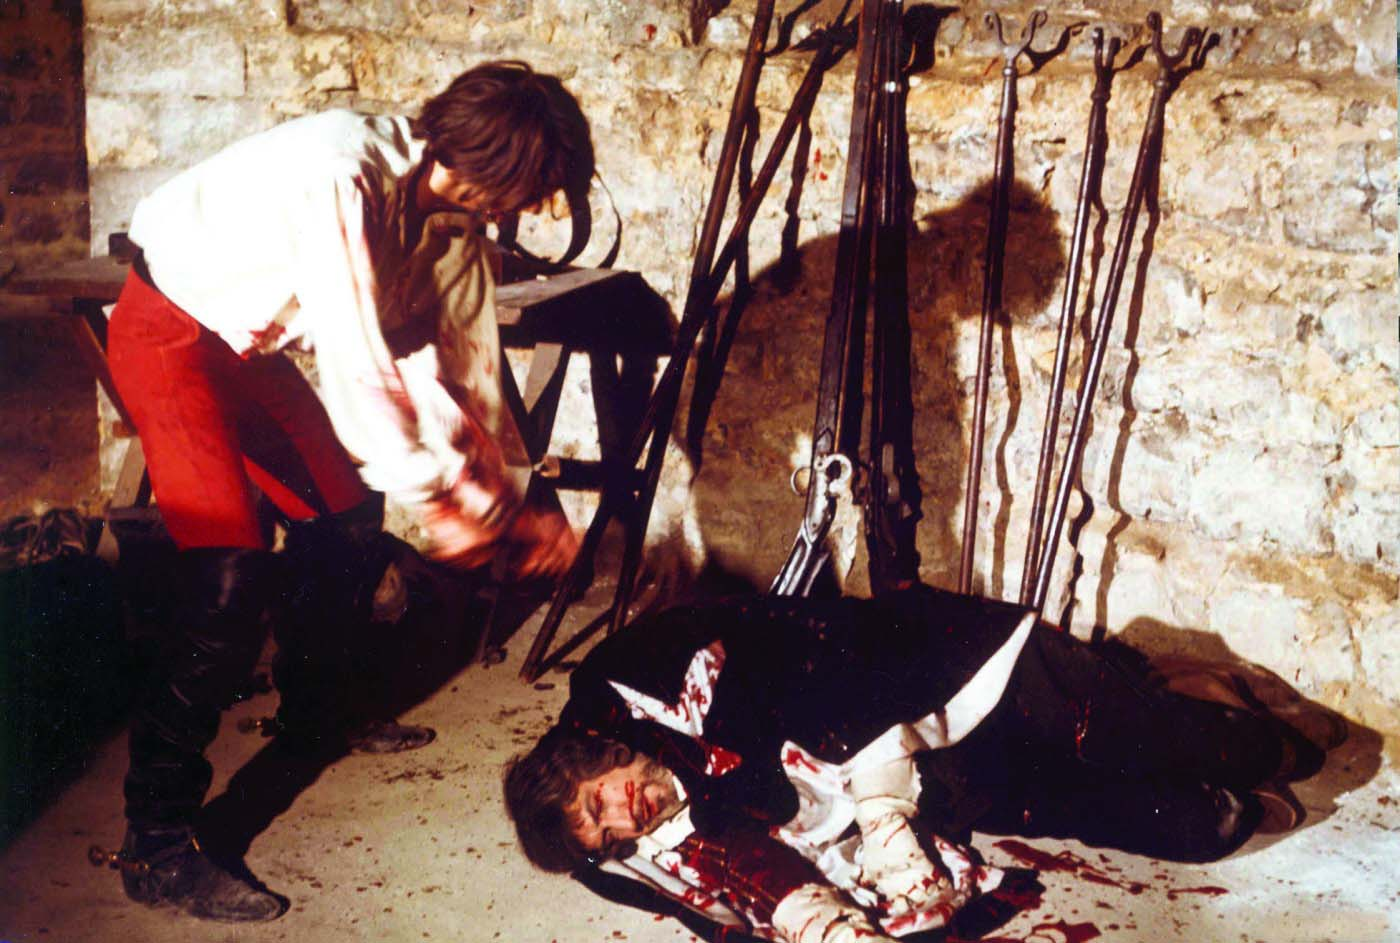 Ian Ogilvy stands over the bloody body of Vincent Price at the conclusion.